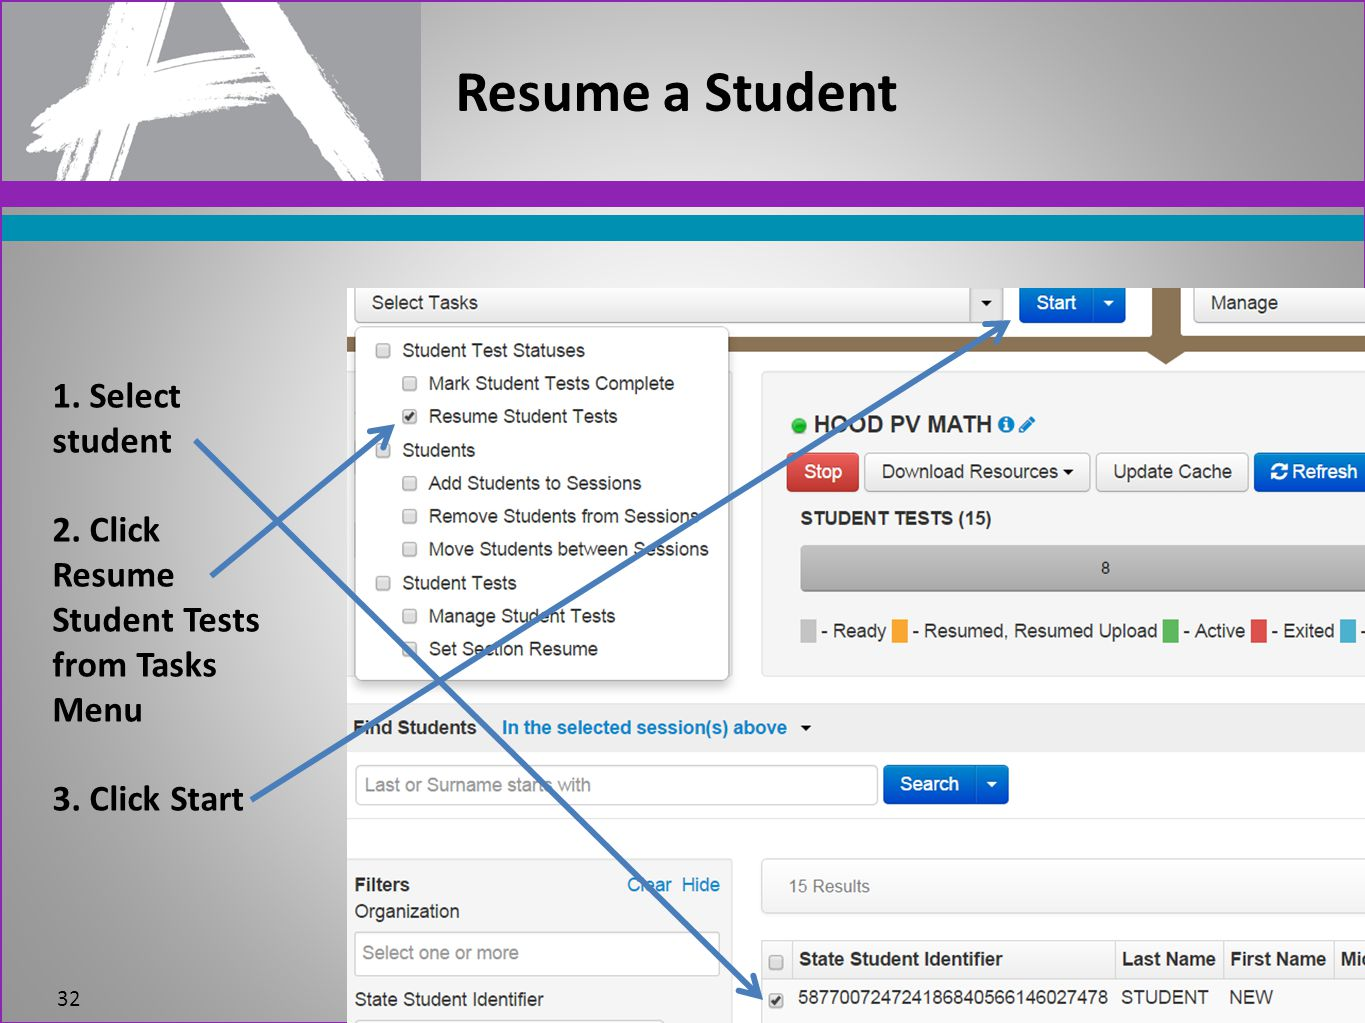 Resume a Student 1. Select student